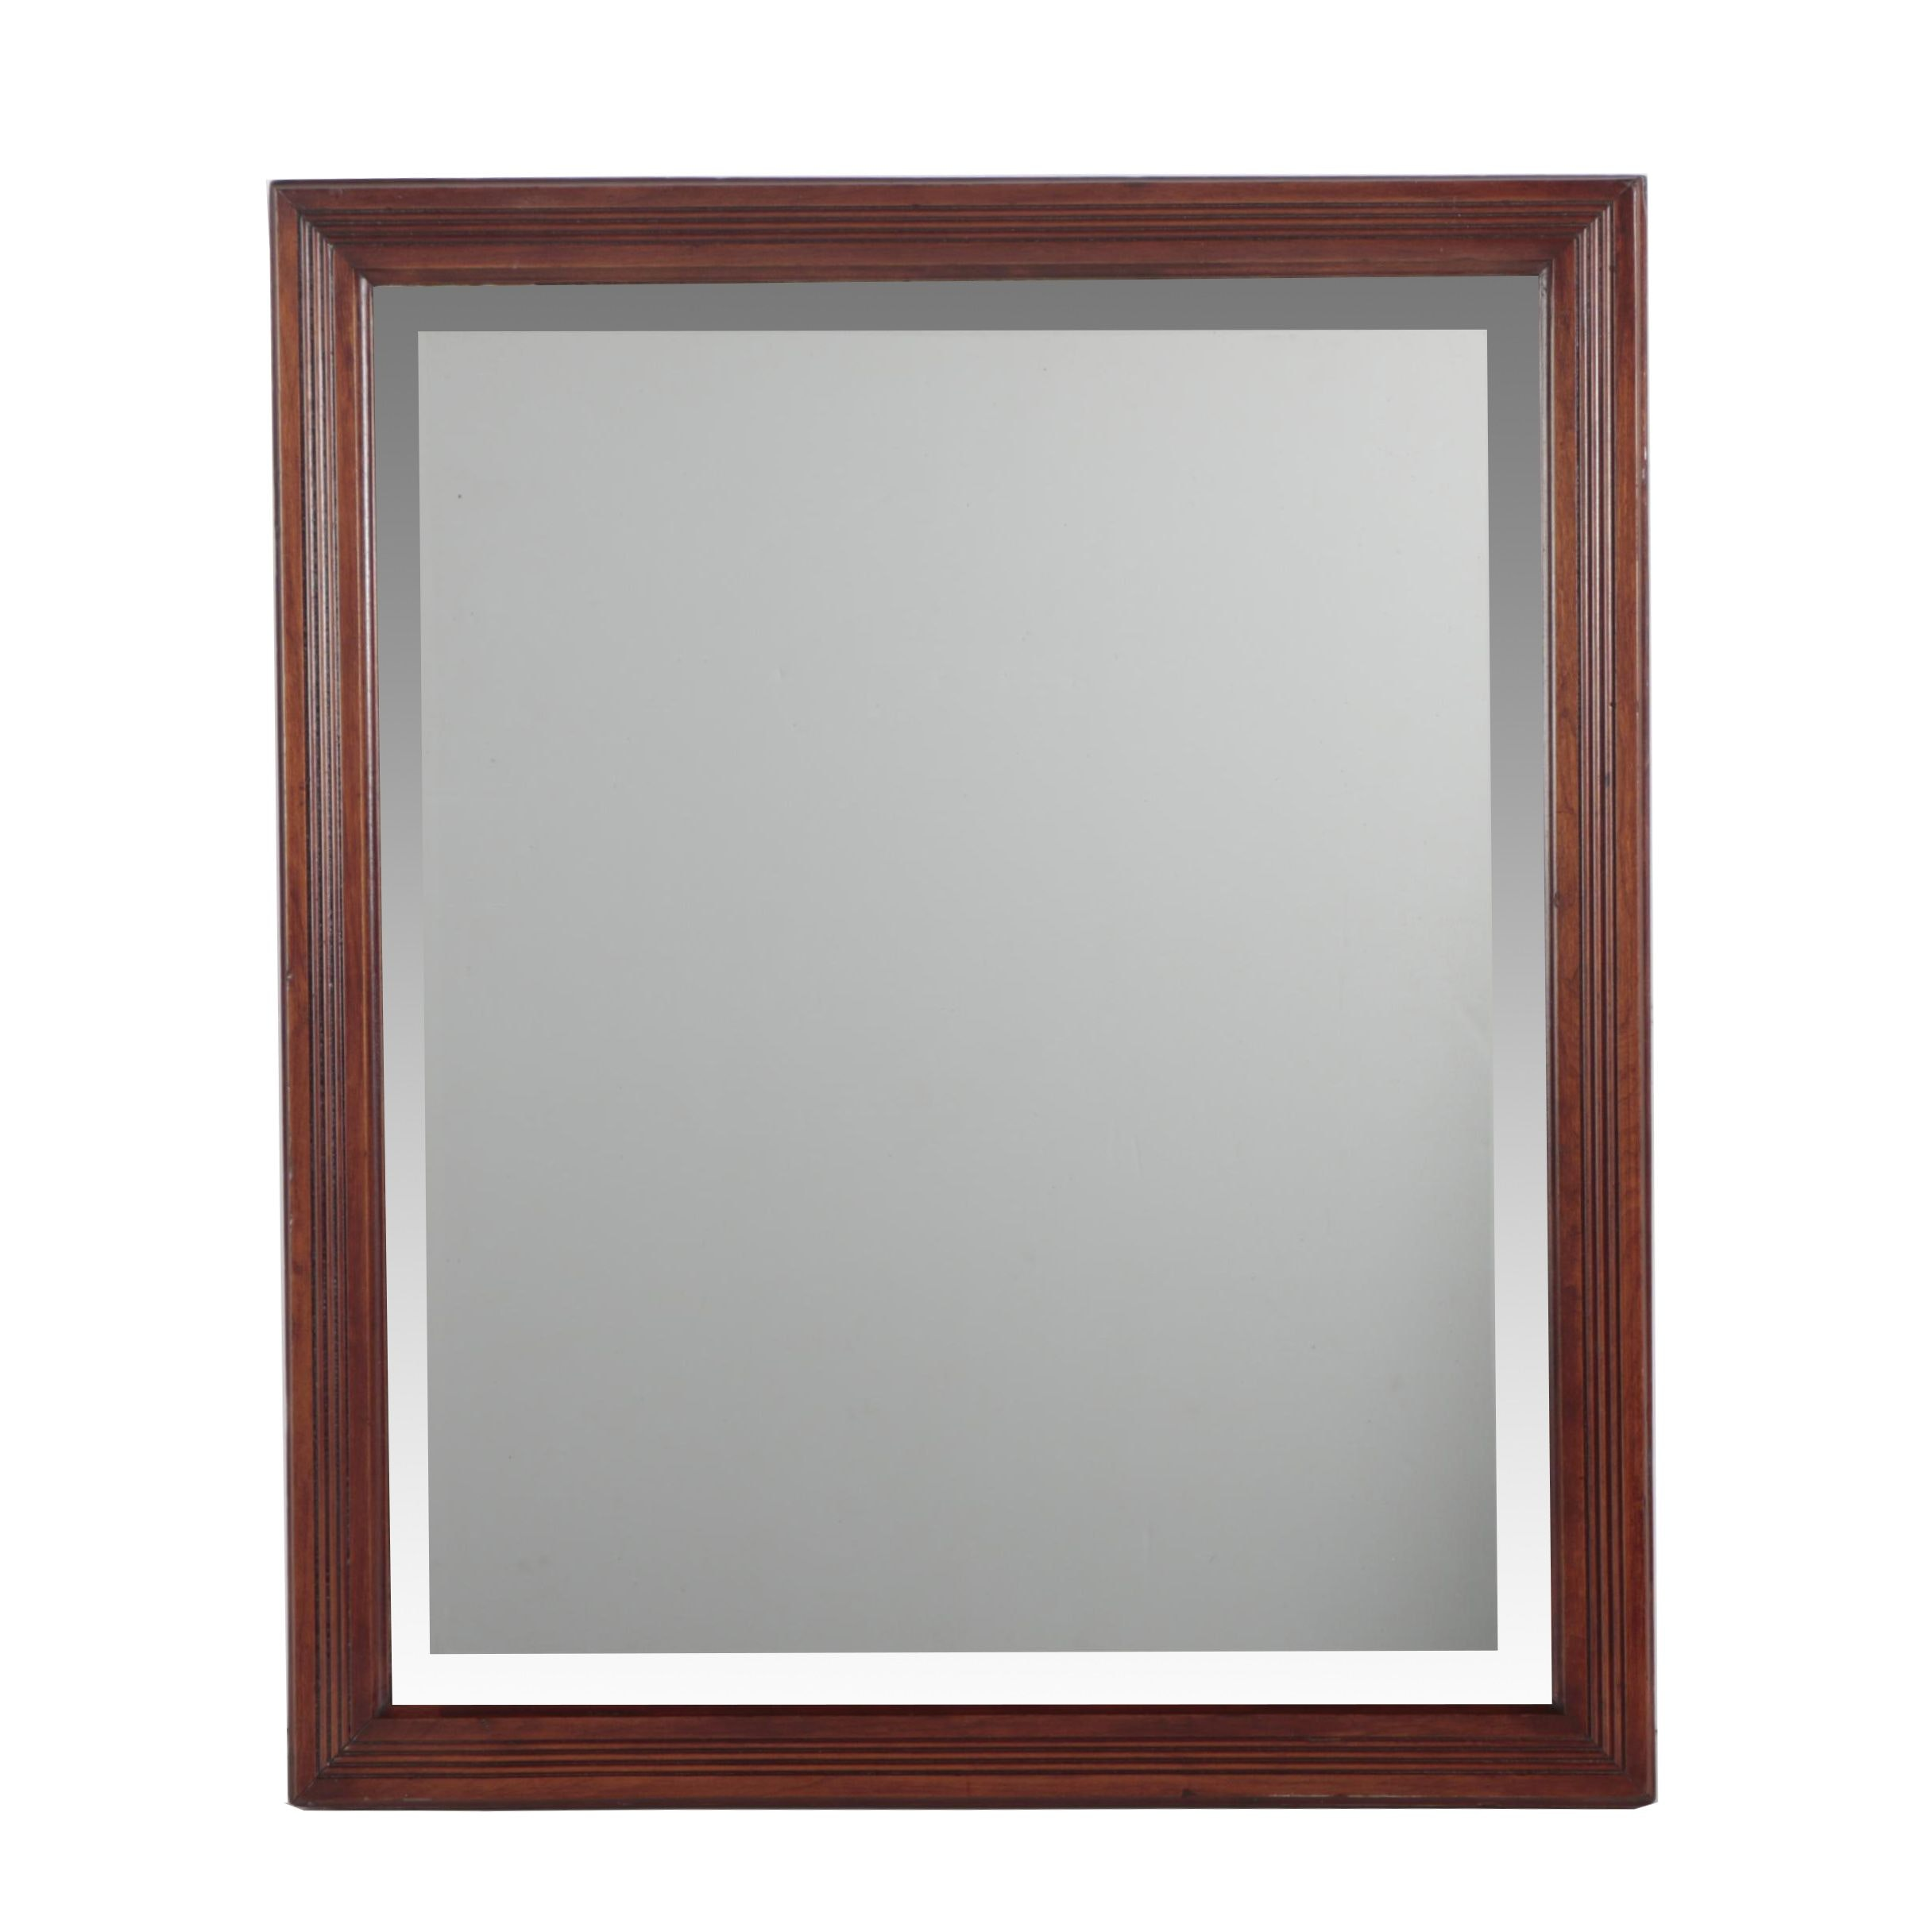 Vintage Beveled Wall Mirror with Reeded Wooden Frame